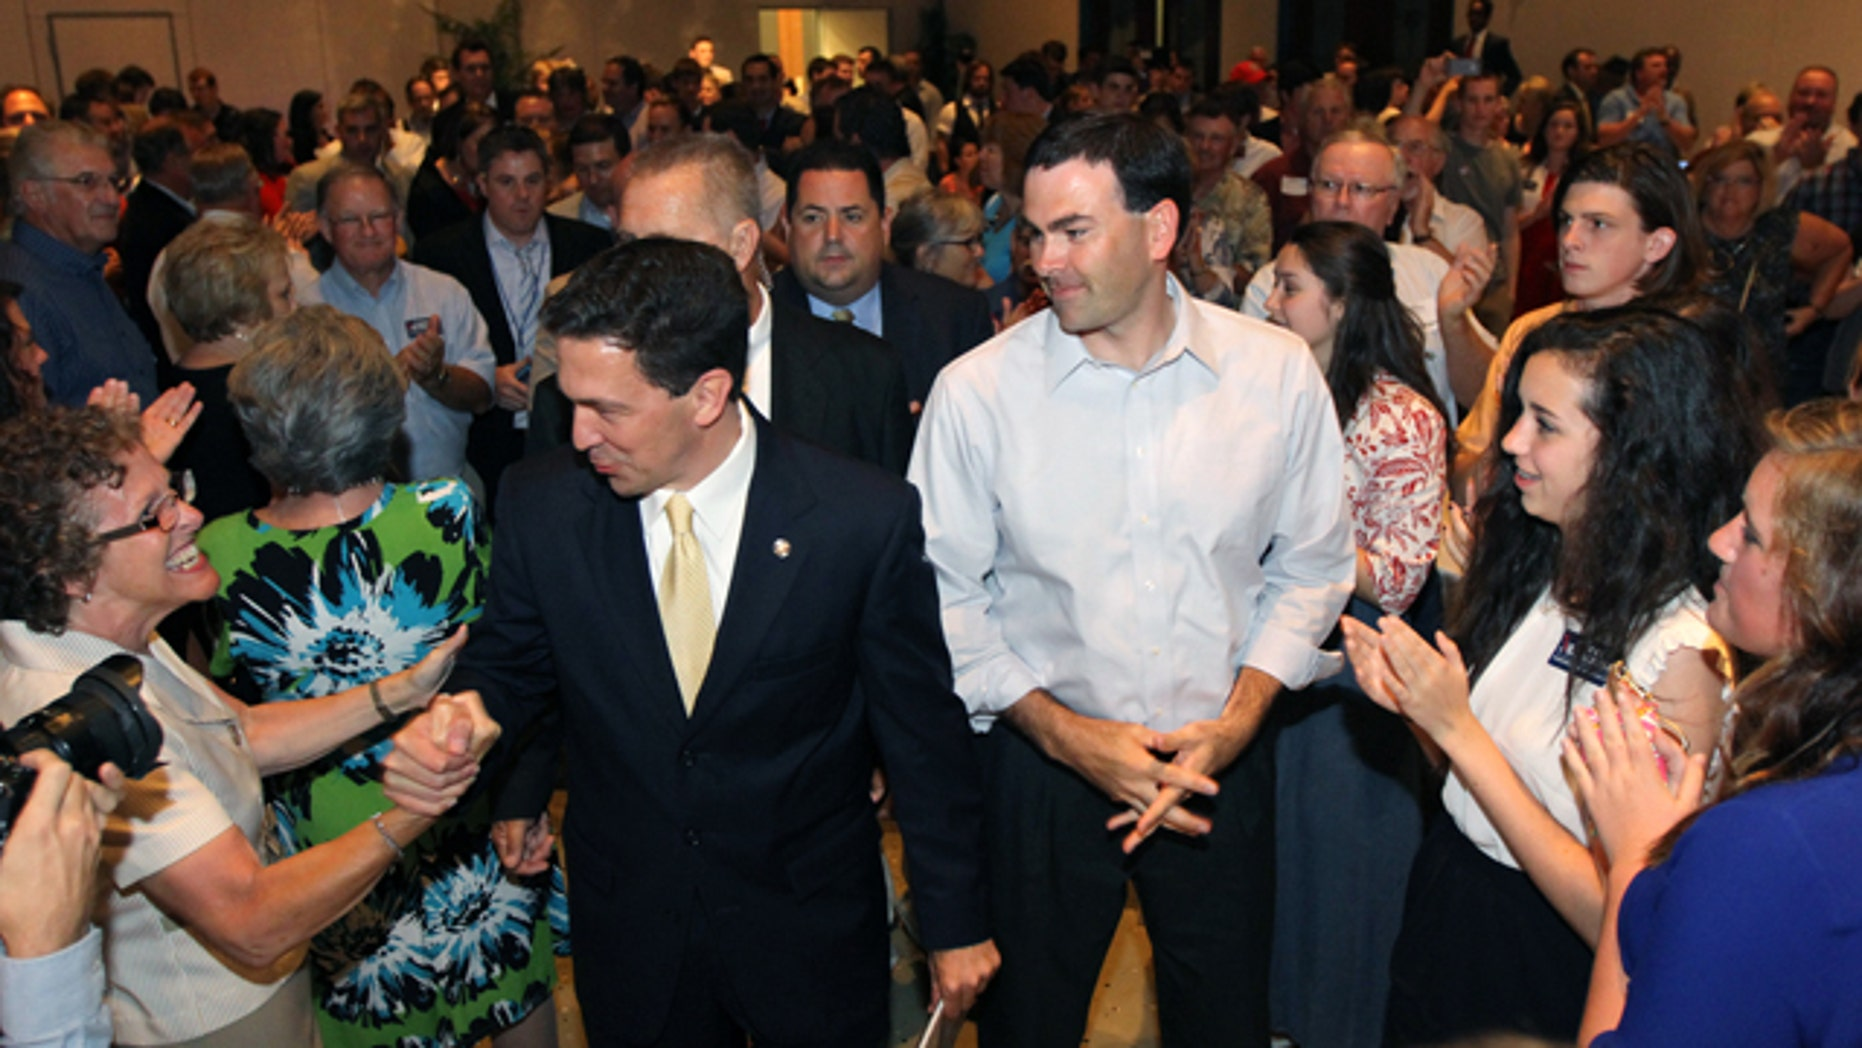 June 3, 2014: Chris McDaniel greets supporters as he heads to the podium to speak about his close race with incumbent U.S. Senator Thad Cochran during McDaniel's election night party at the Lake Terrace Convention Center in Hattiesburg, Miss.  (AP Photo/George Clark)